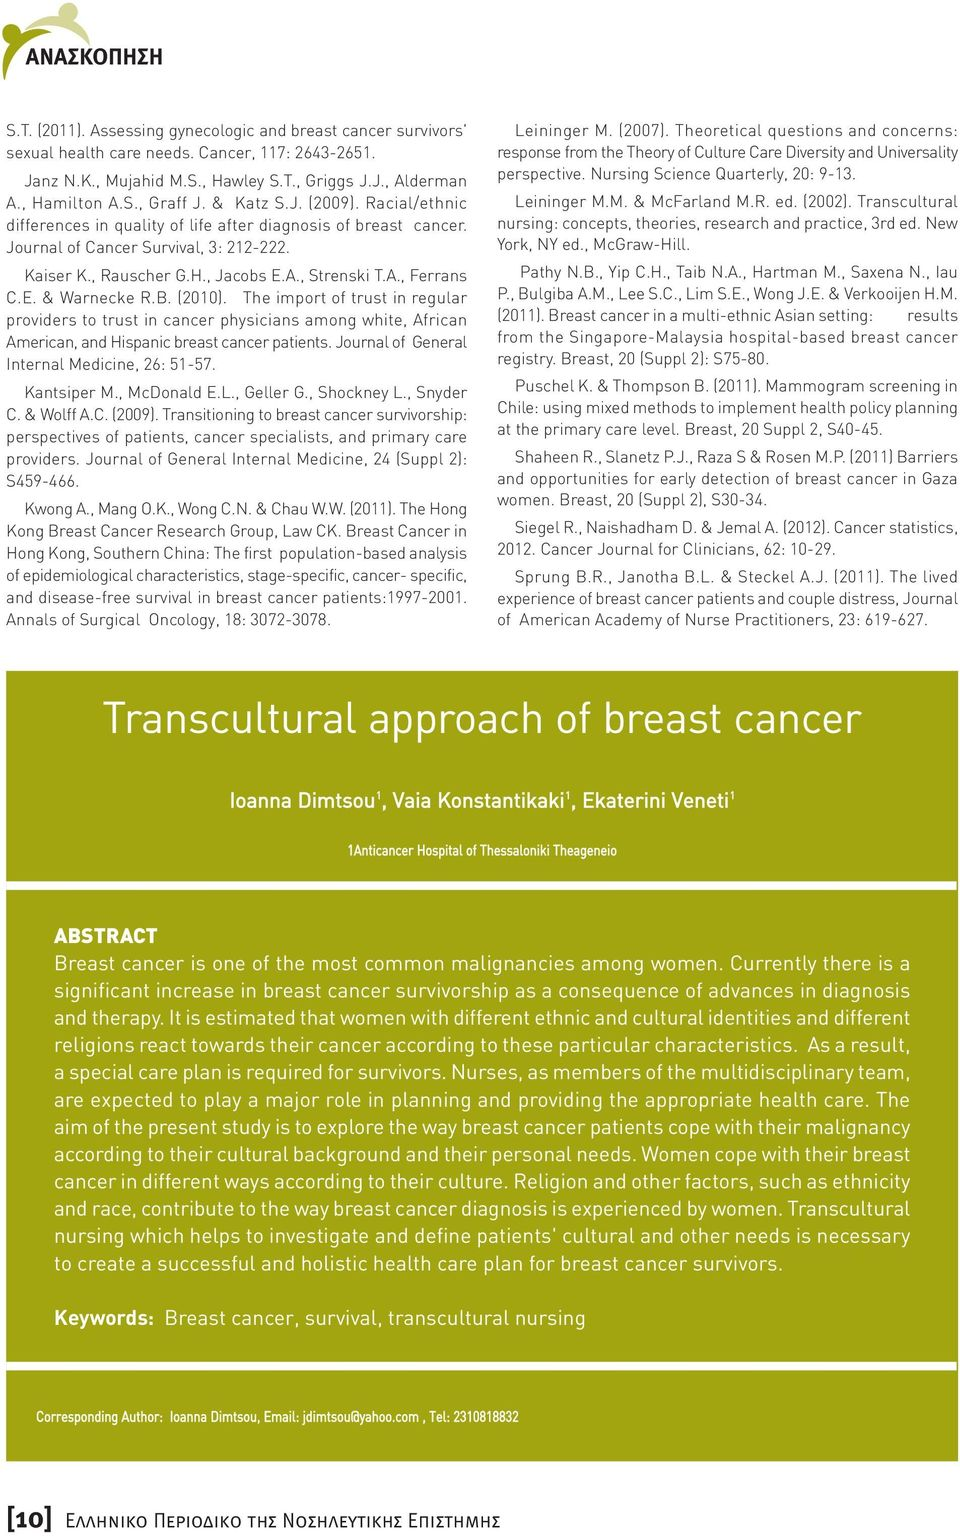 , Strenski T.A., Ferrans C.E. & Warnecke R.B. (2010). The import of trust in regular providers to trust in cancer physicians among white, African American, and Hispanic breast cancer patients.